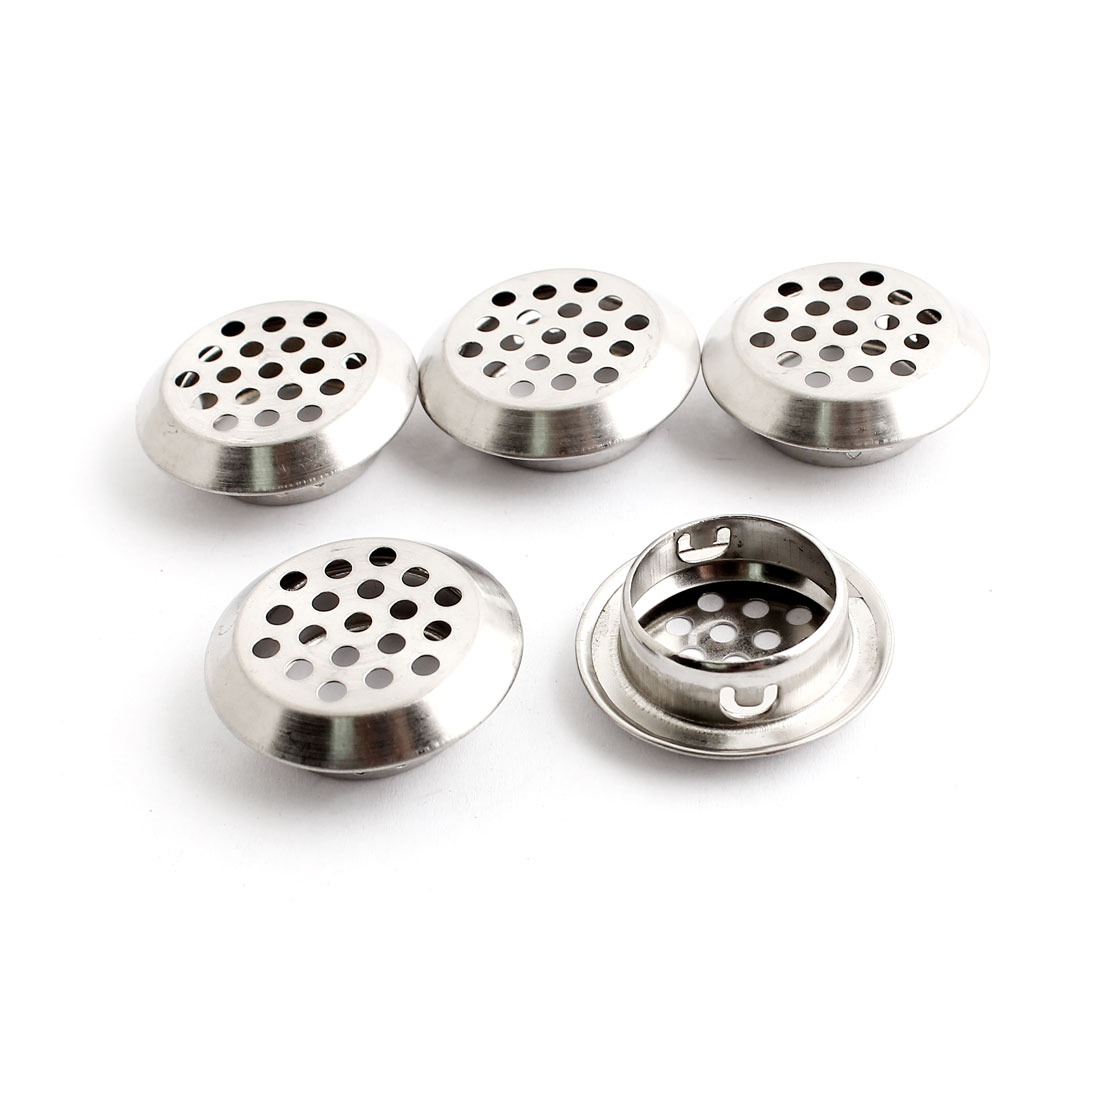 25mm Bottom Dia Circular Air Vent Grille Covers Ventilation Grilles 5PCS